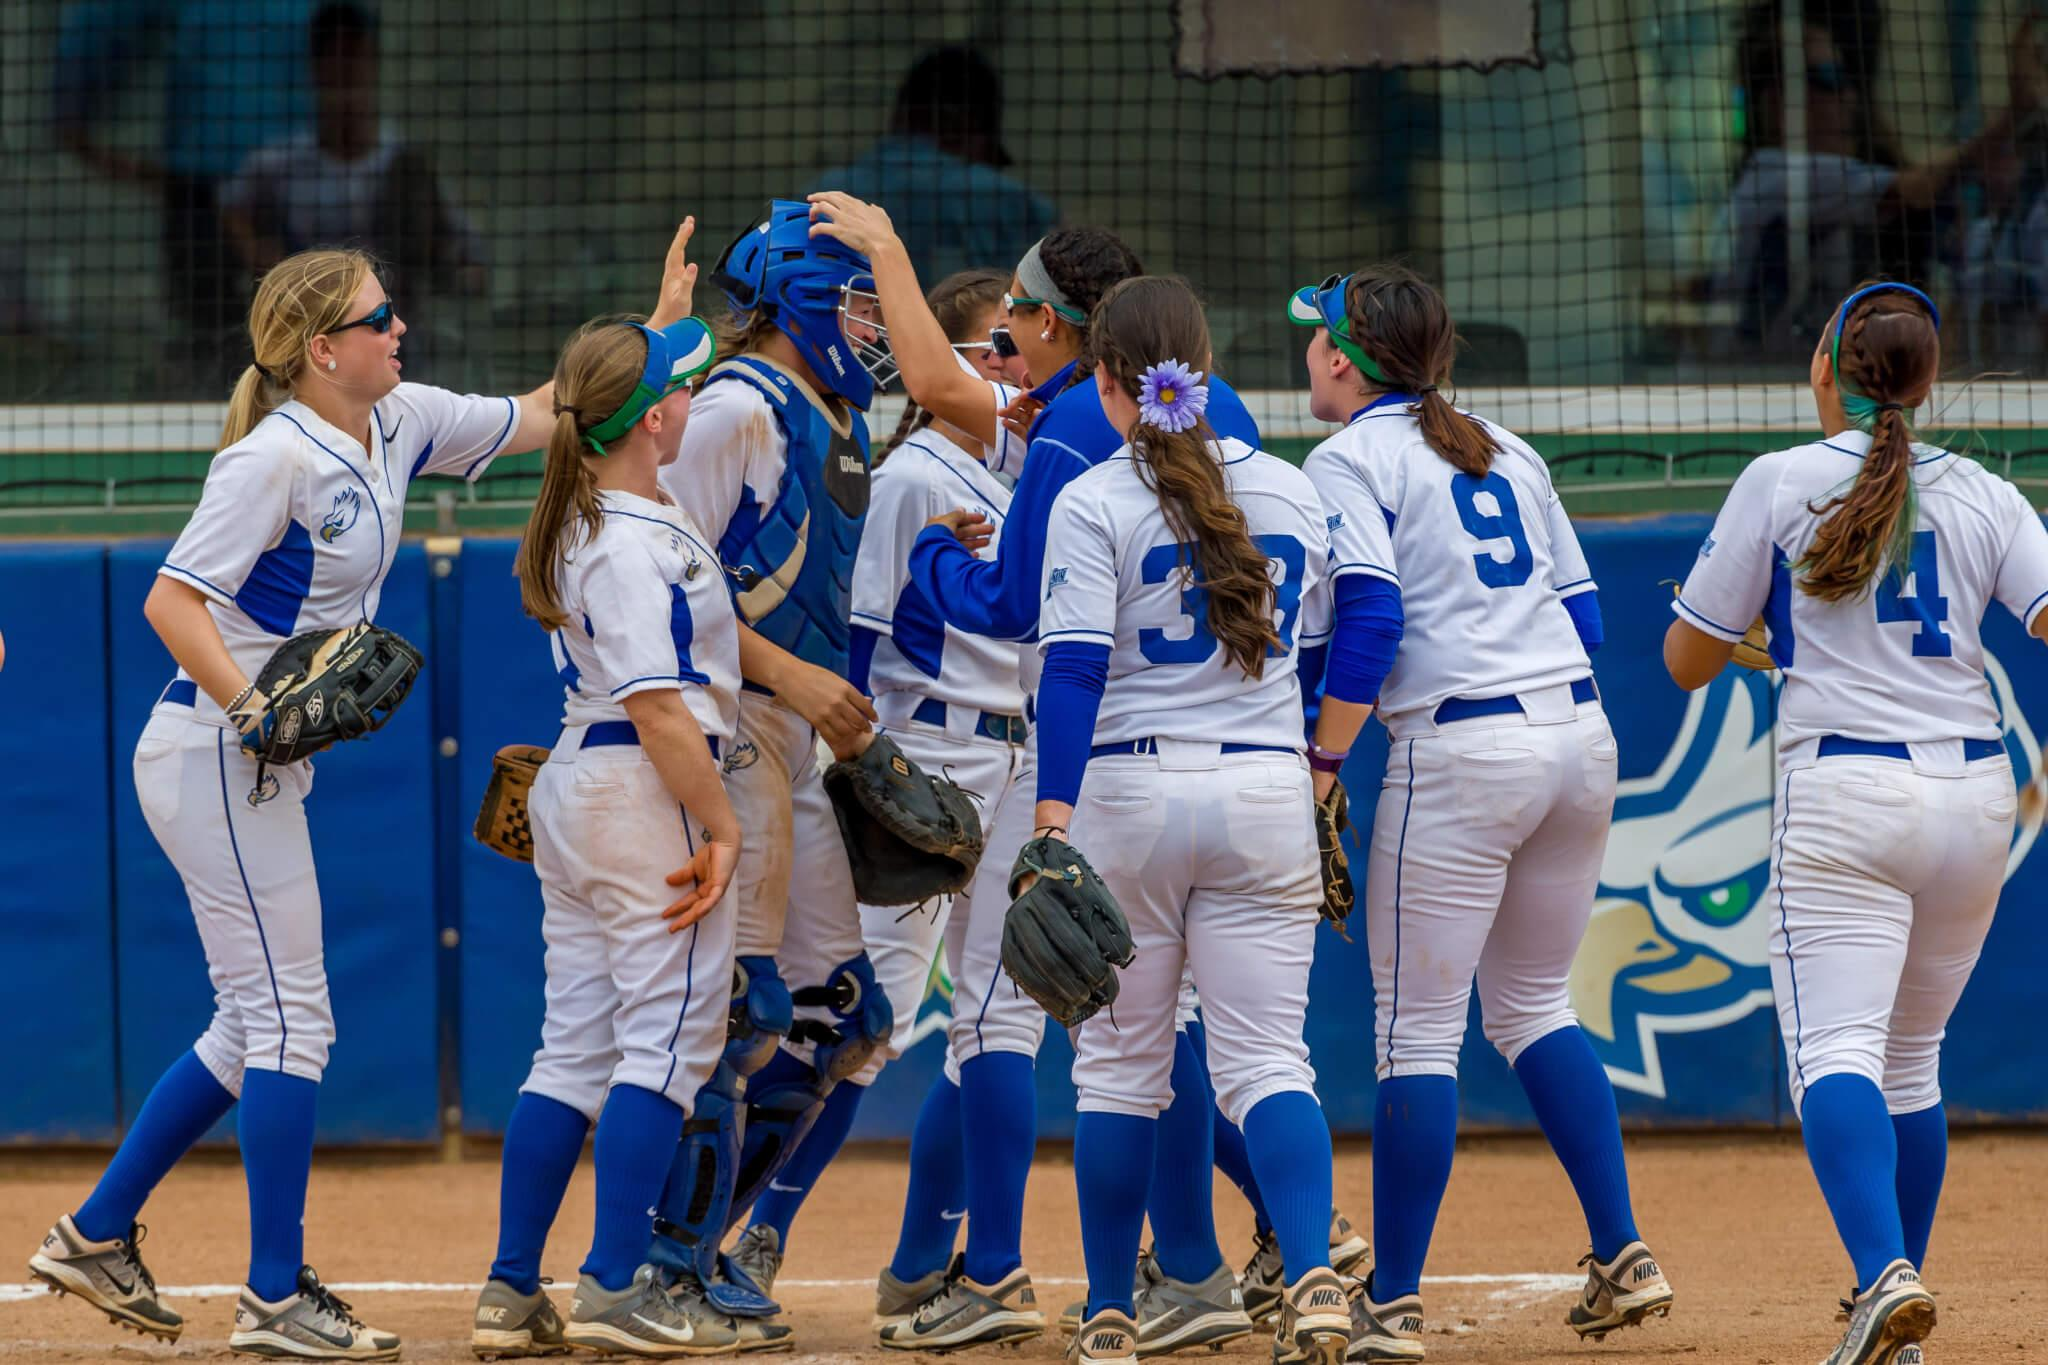 FGCU loses two in FAU doubleheader